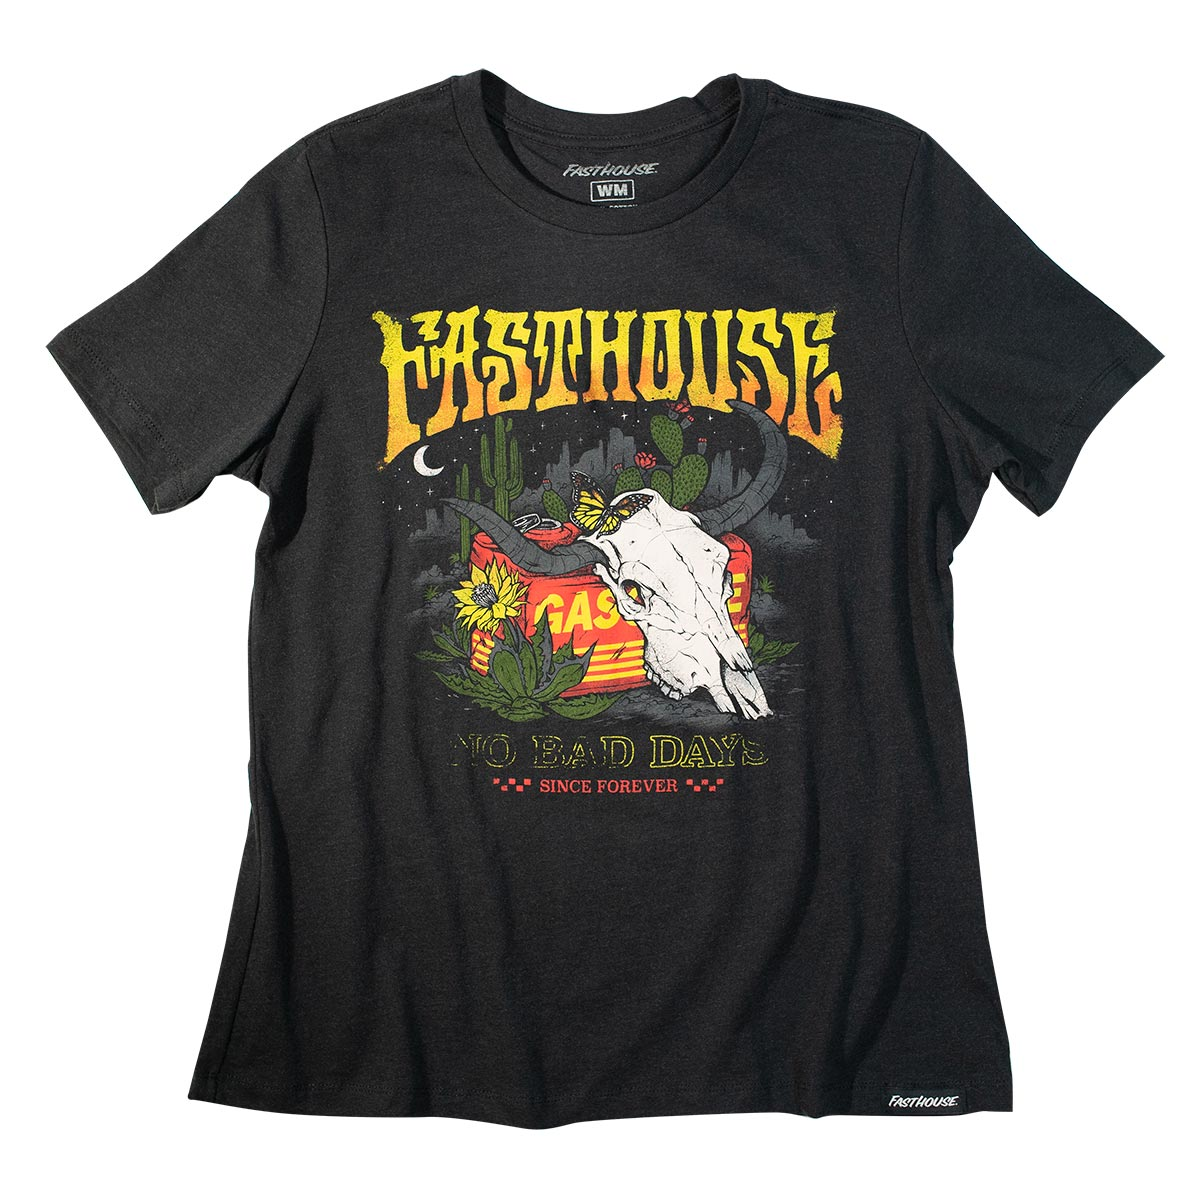 Fasthouse - Forever Womens Tee - Black Heather